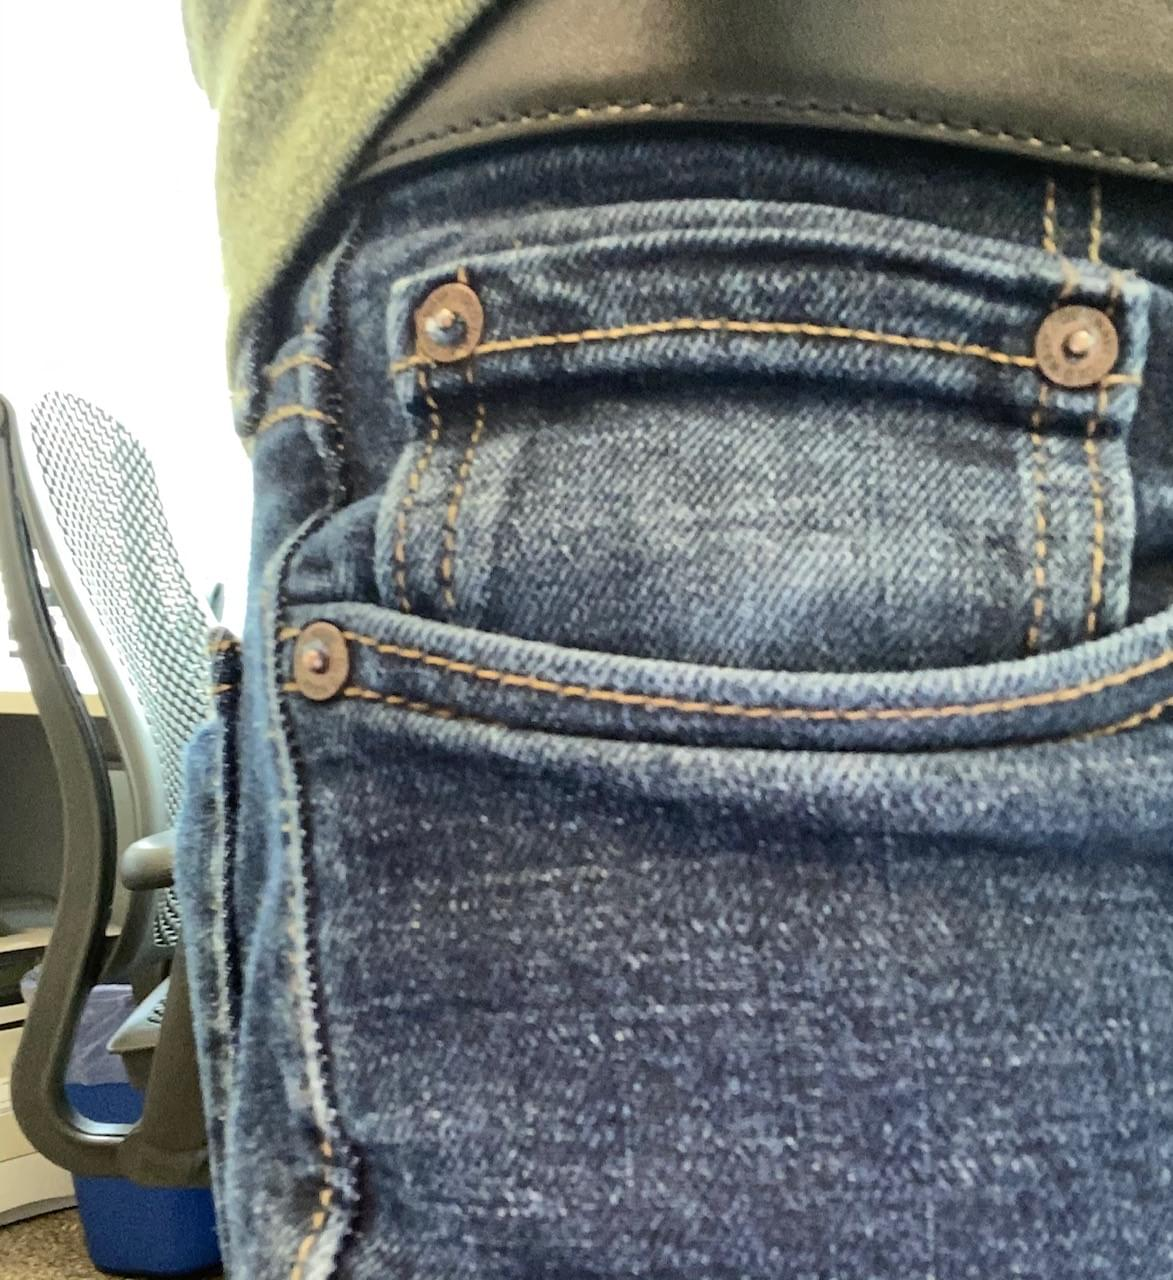 MUNDANE MYSTERIES: Why Do Jeans Have That Little Fifth Pocket?